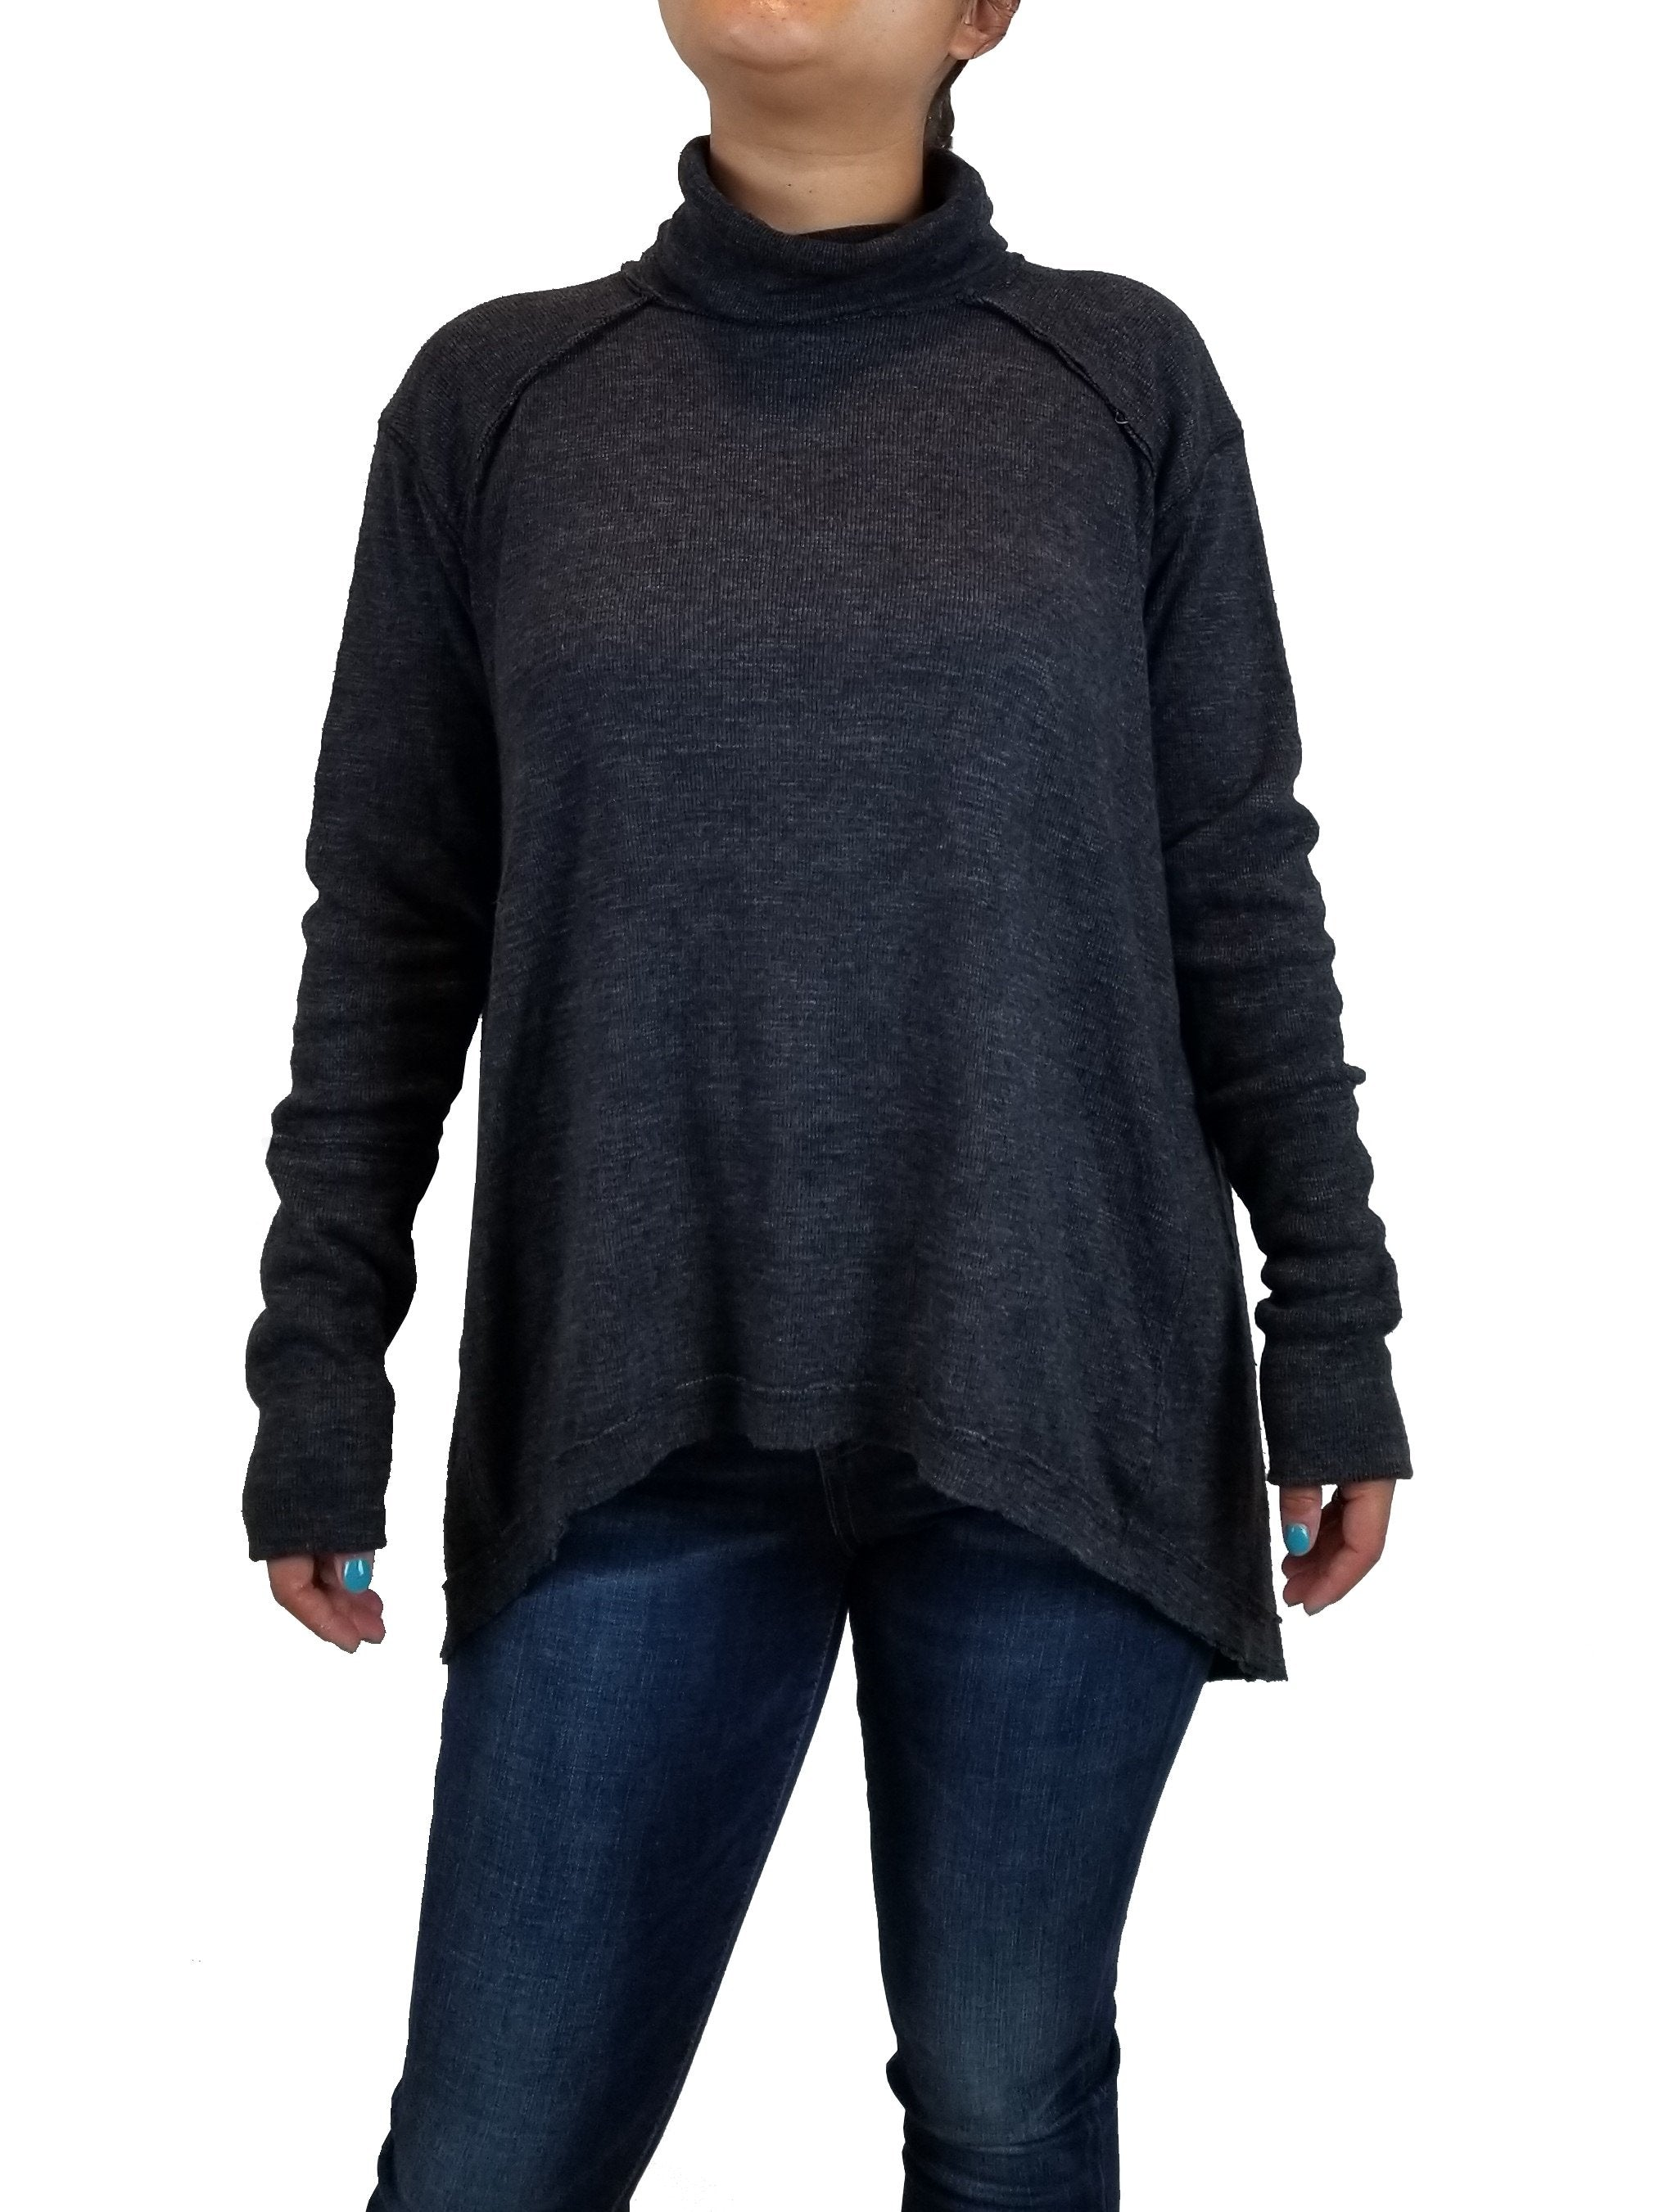 We the free Women's Turtleneck Pullover, Flowy turtleneck pullover for a comfy yet elegant look, Grey, 50% Polyester, 38% Cotton, 12% Rayon, women's Tops, women's Grey Tops, We the free women's Tops, sweater, shirt, turtleneck, loose sweater, women's black turtleneck with open back, all set black oversized backless sweater, wide cut boxy bodice